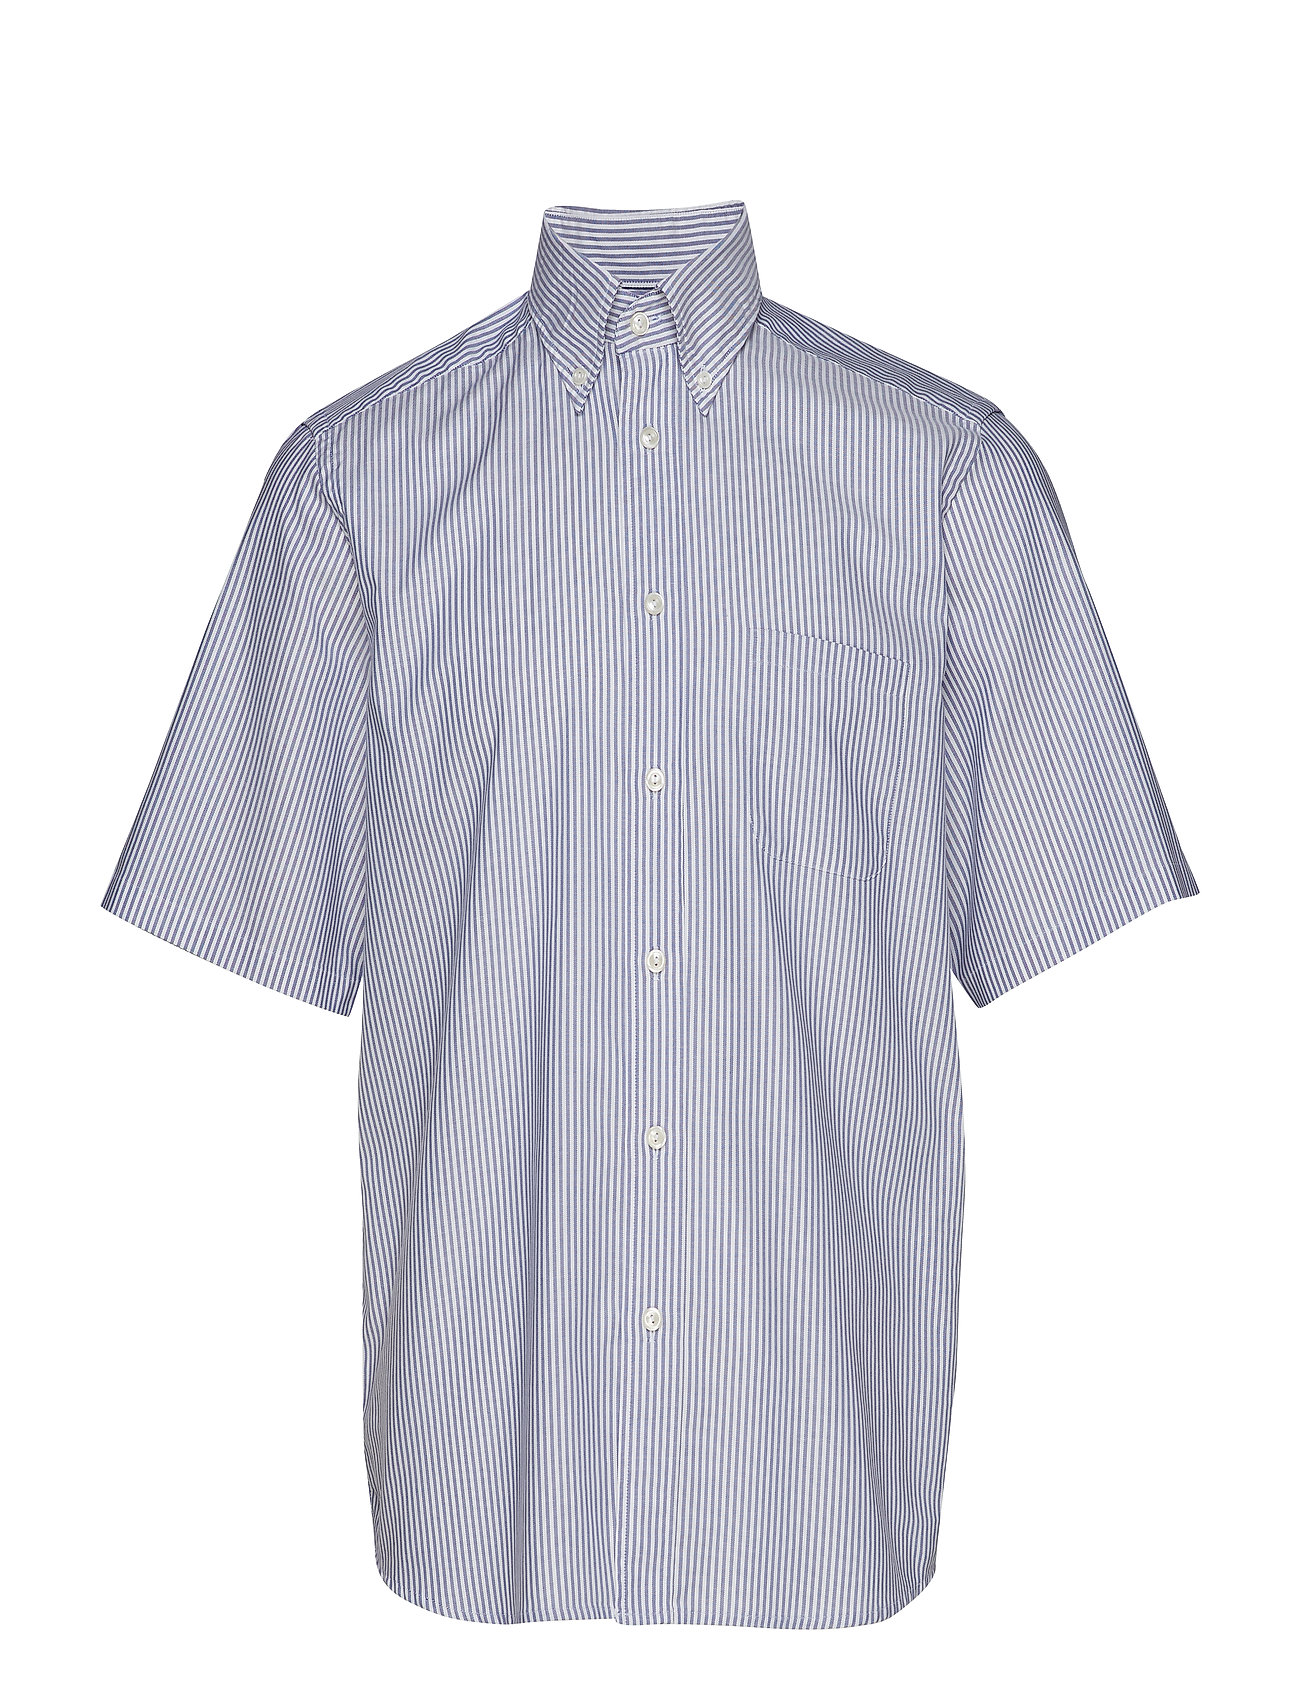 Eton Sky Blue Striped Natural Stretch Oxford Short Sleeve Shirt - BLUE